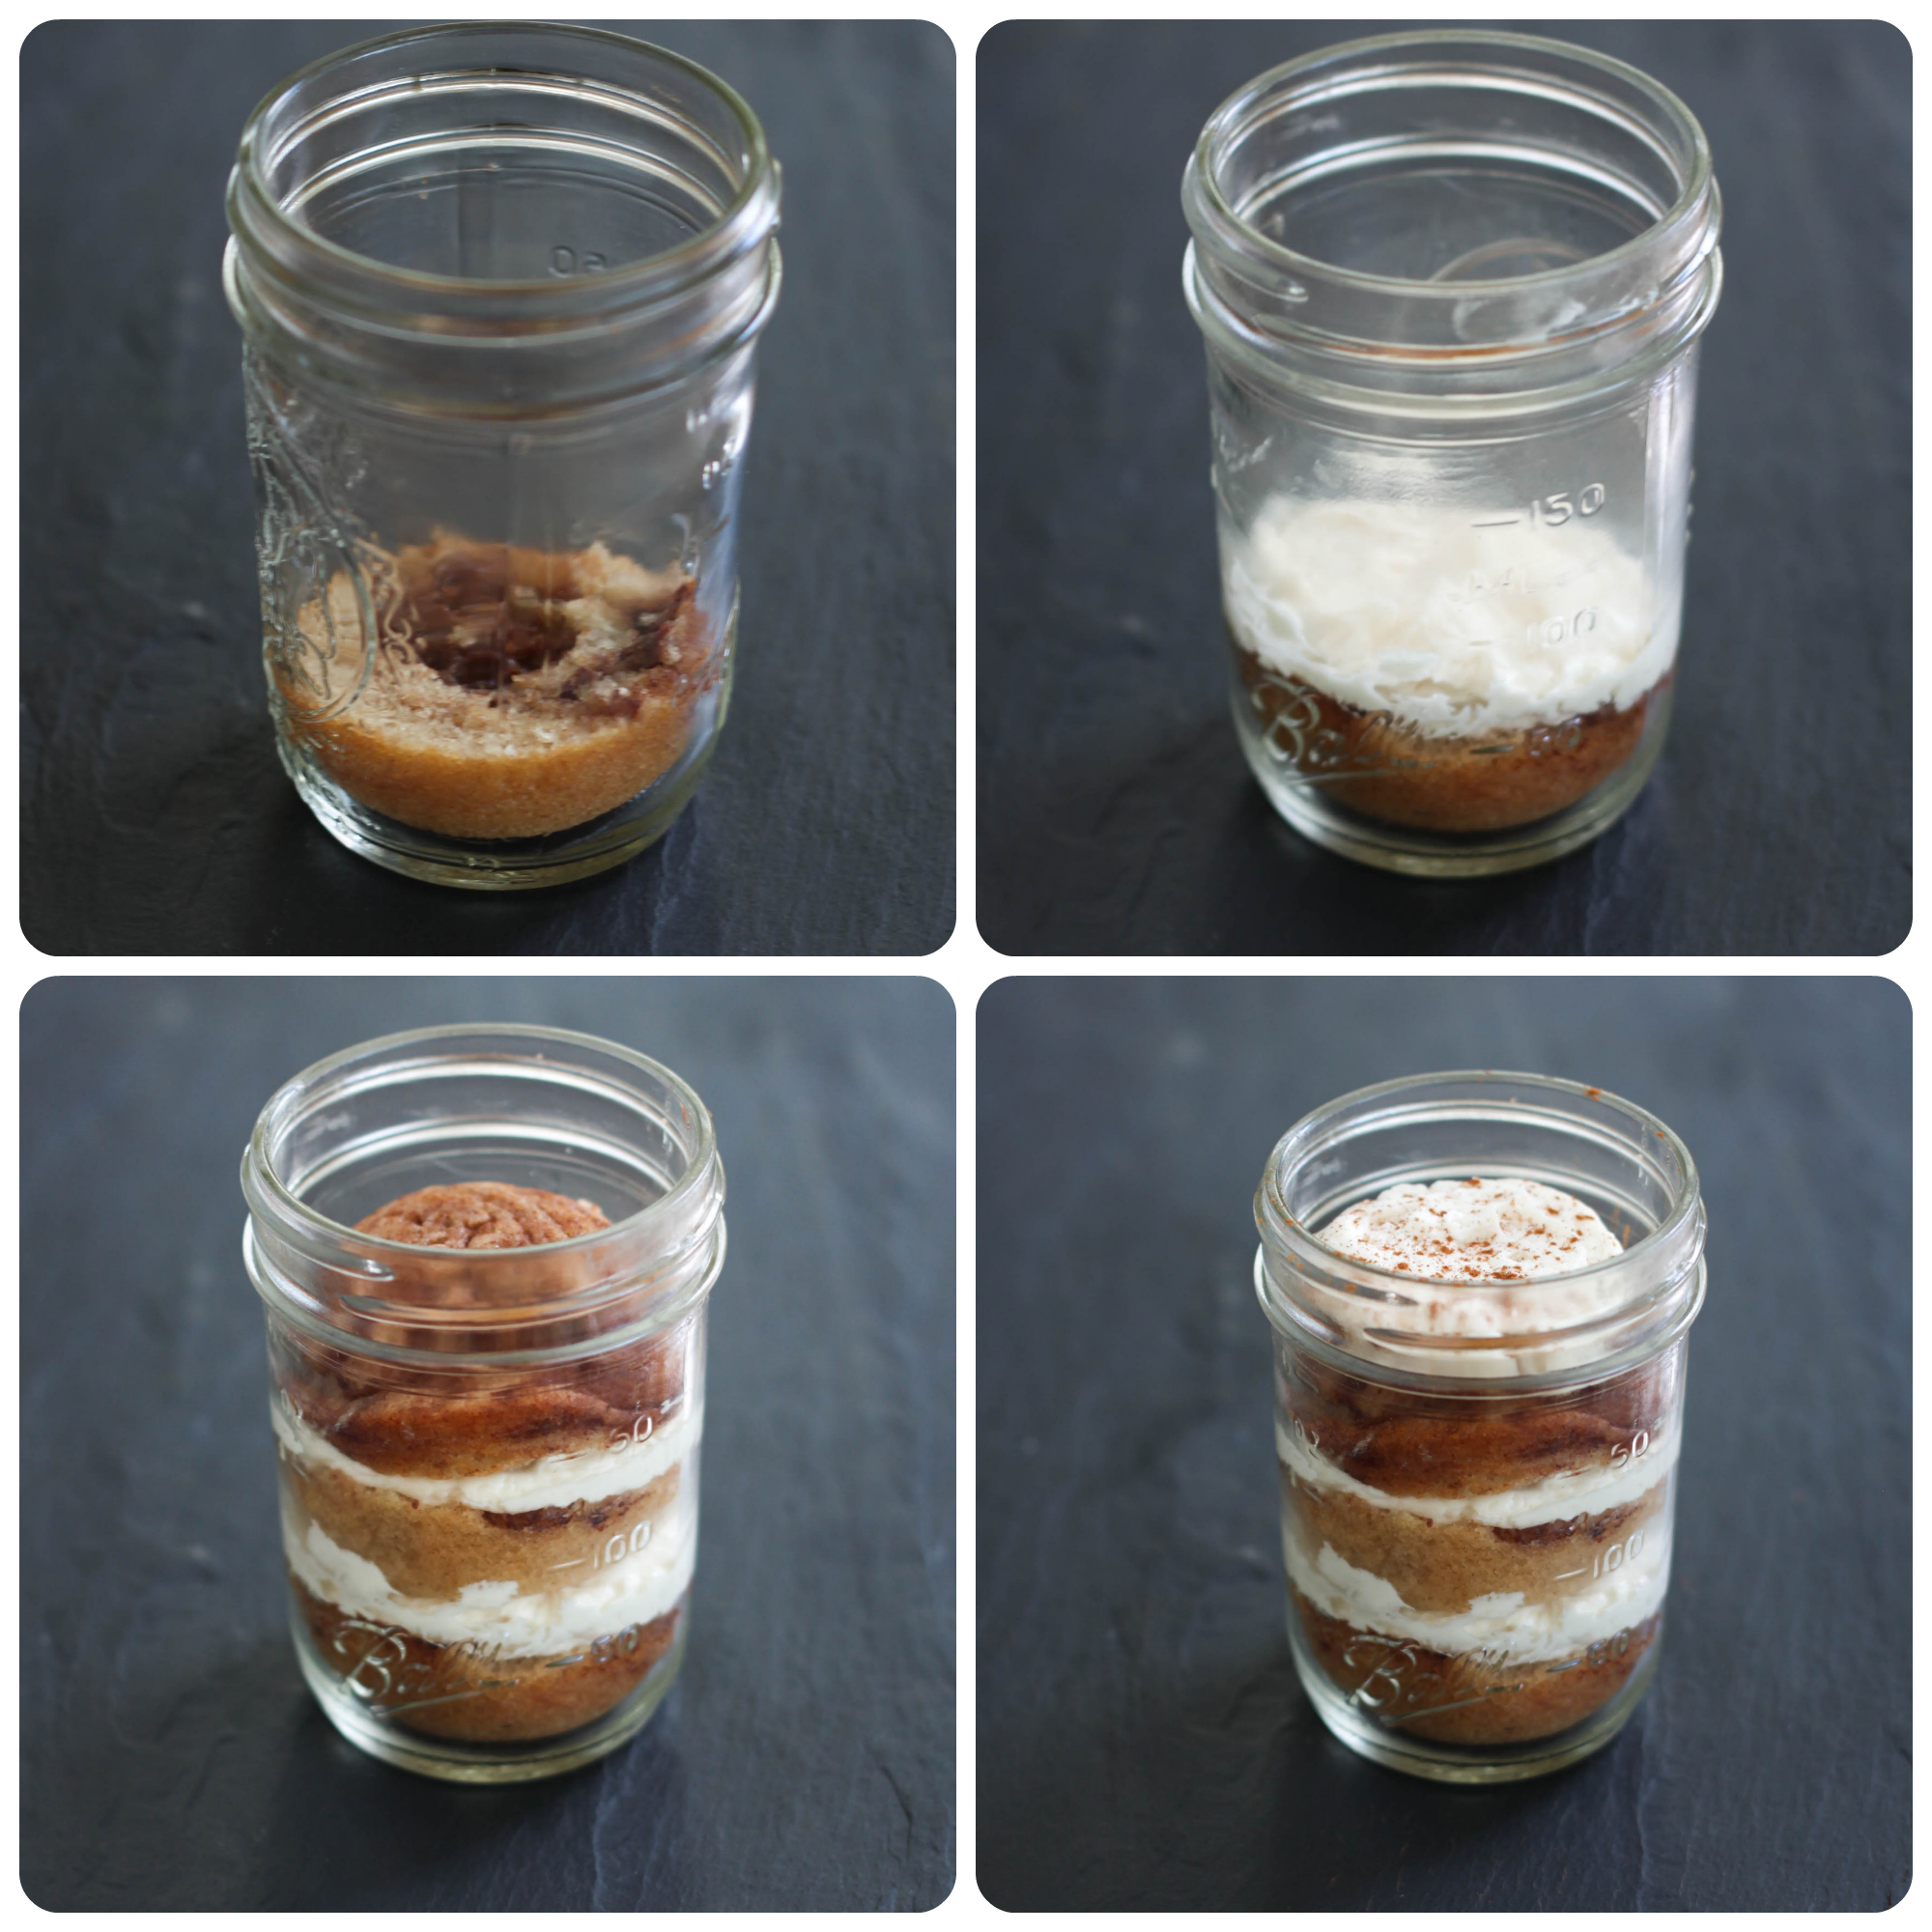 How to assemble a cupcake in a jar